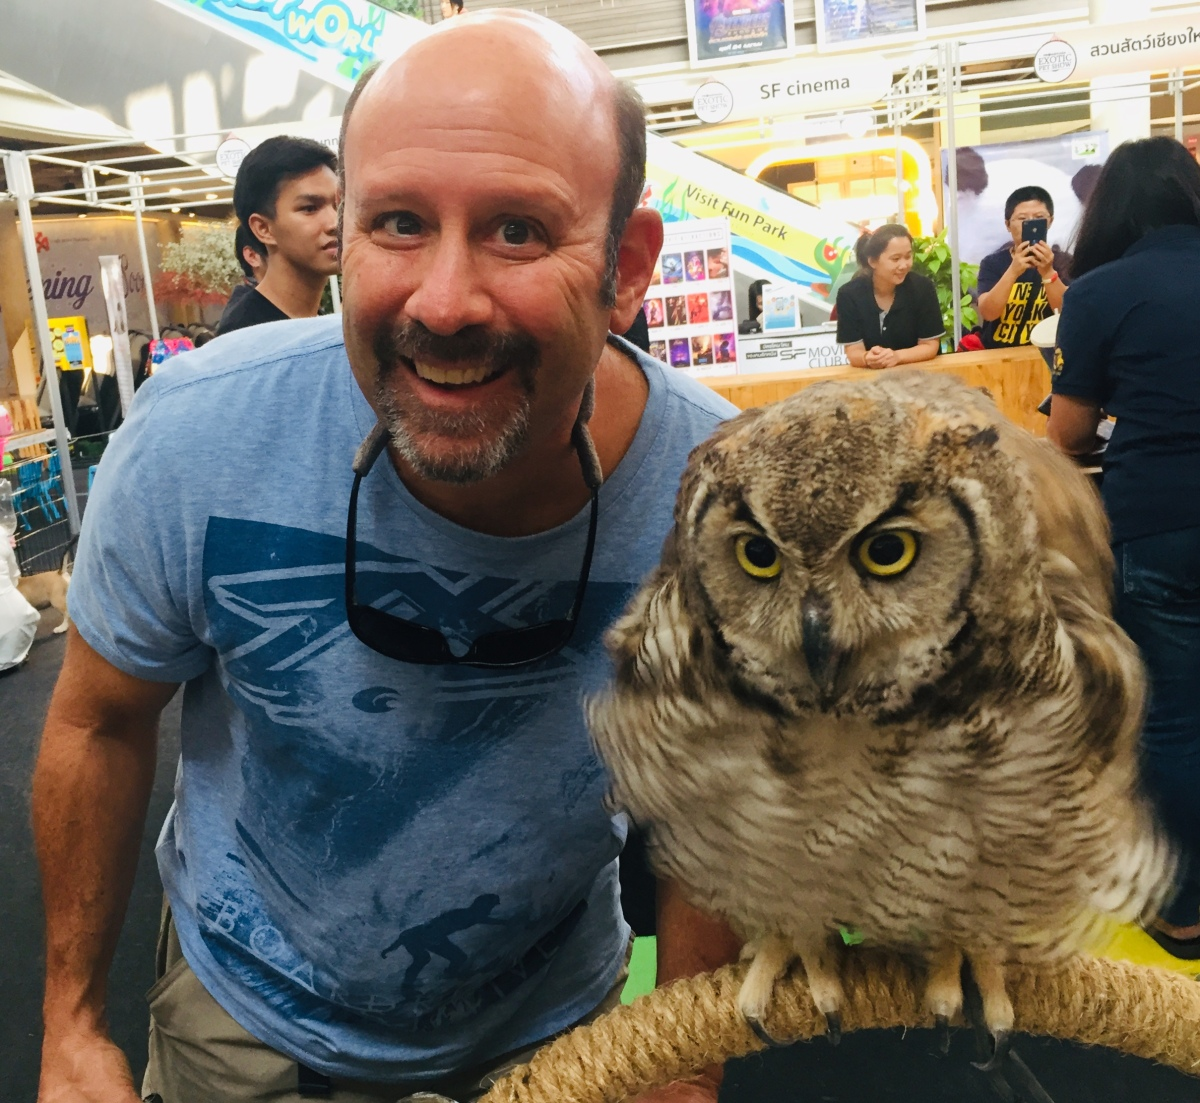 Me and My Owl